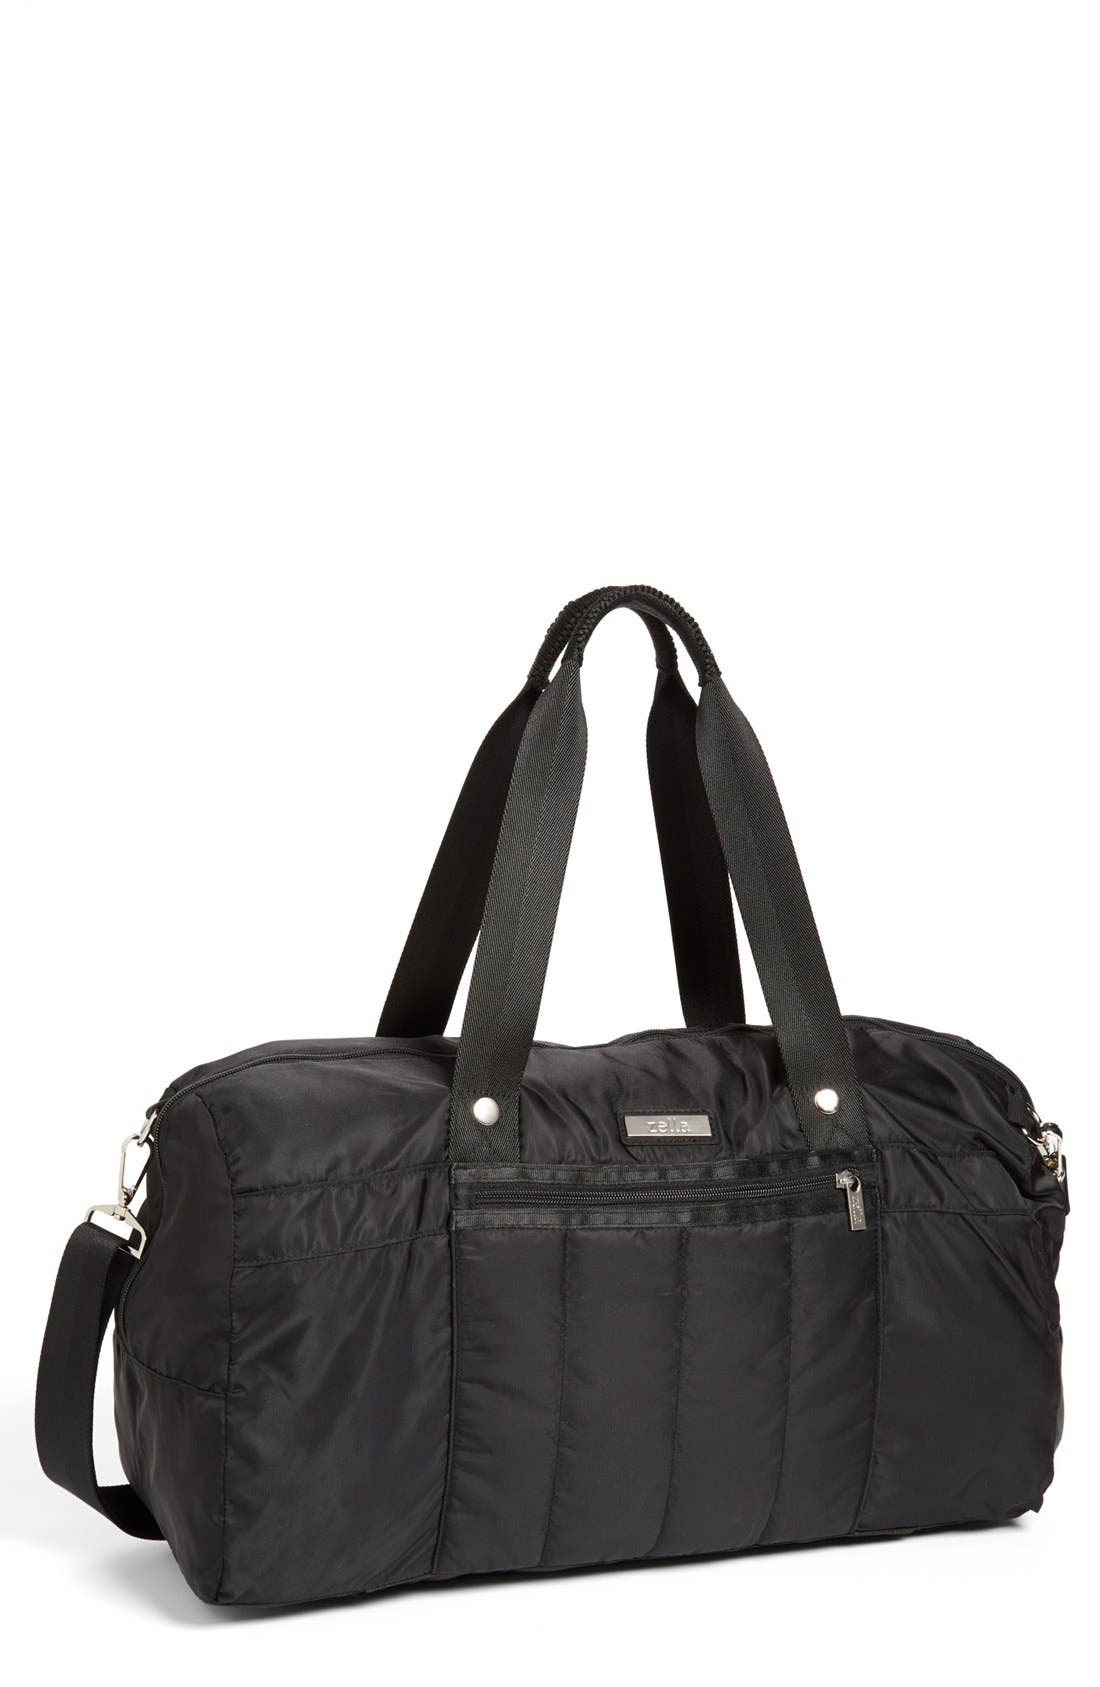 Quilted Gear Duffel Bag,                         Main,                         color, 001